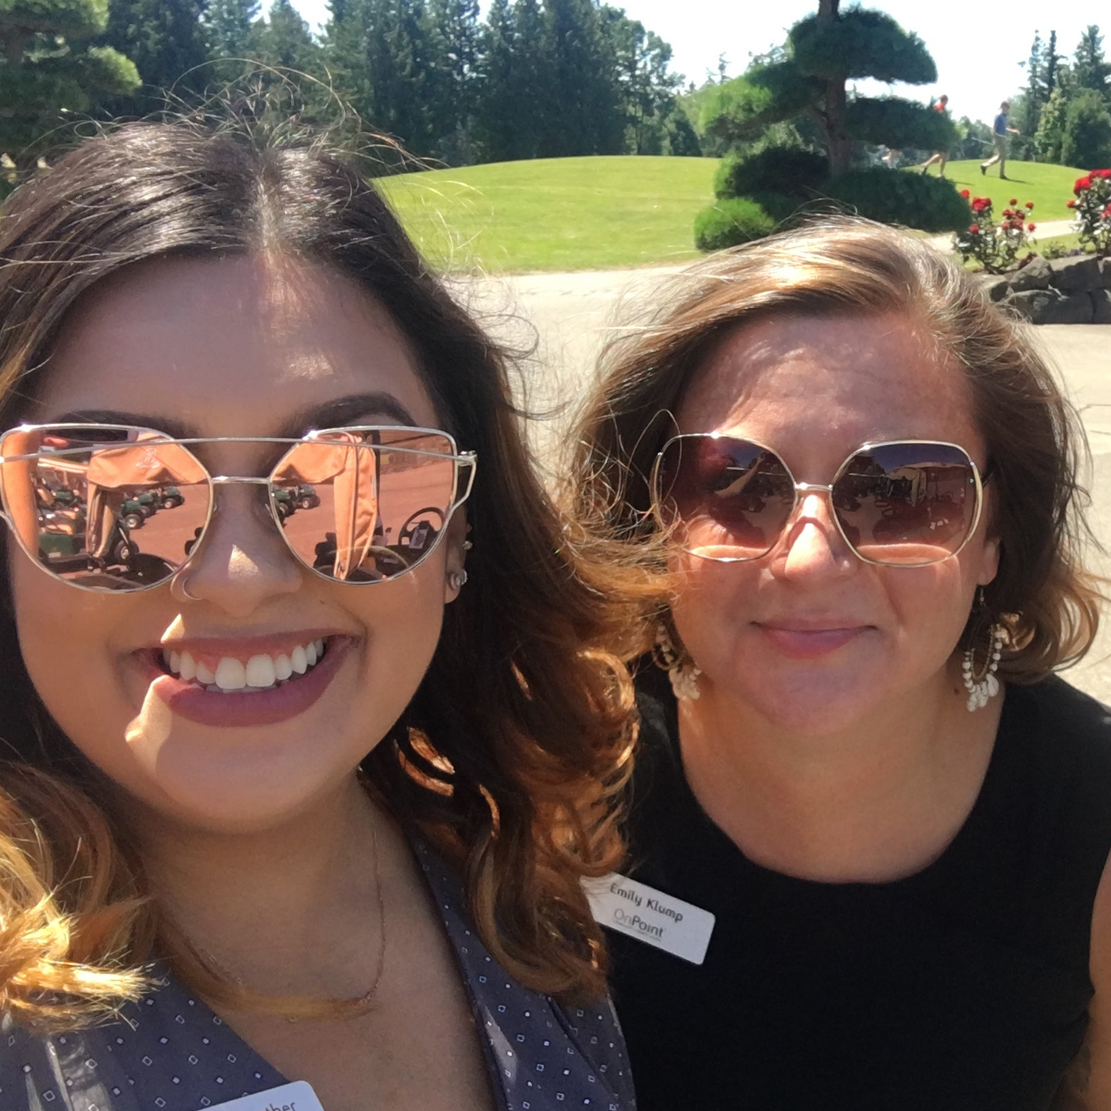 Emily Klump with Marnie Fairbrother at a local pacific northwest winery